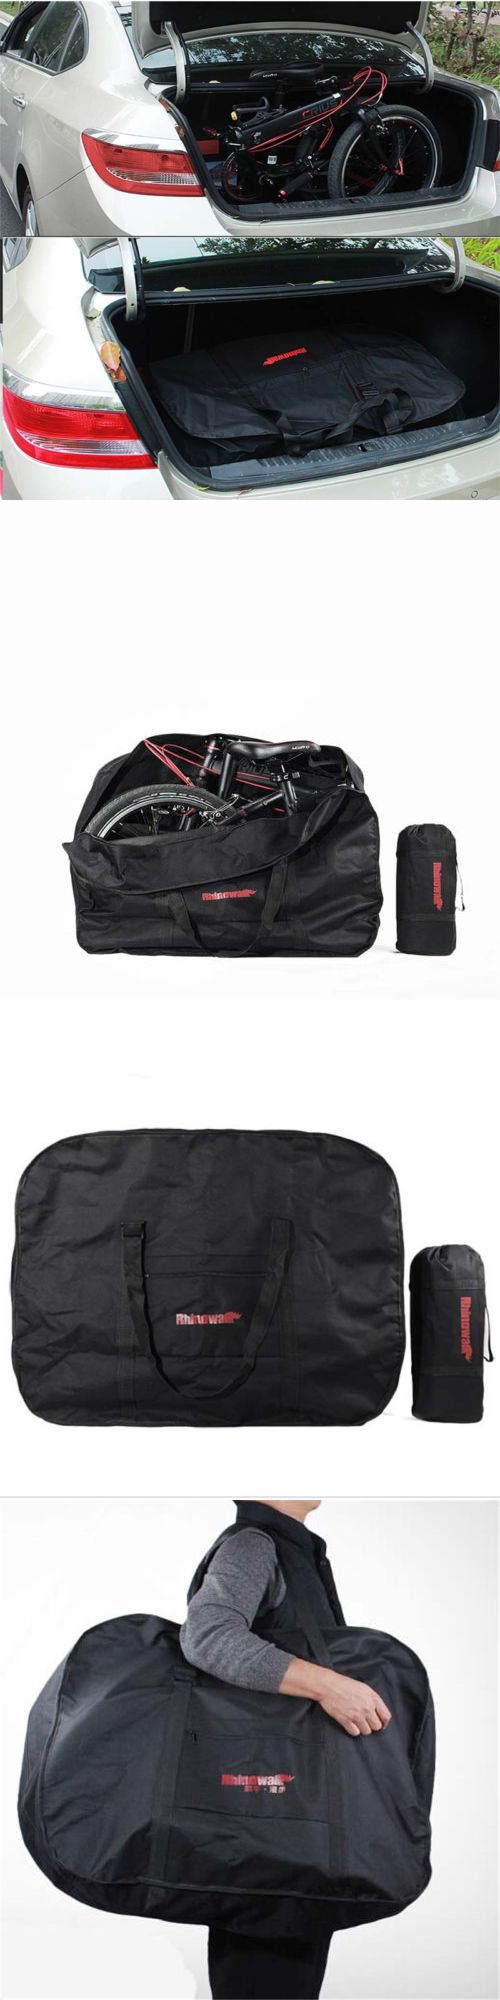 856 Best Bicycle Transport Cases And Bags 177835 Images On Pinterest Topeak Tourguide Handlebar Bag Dx 20 Inch Folding Mountain Bike Carry Travel